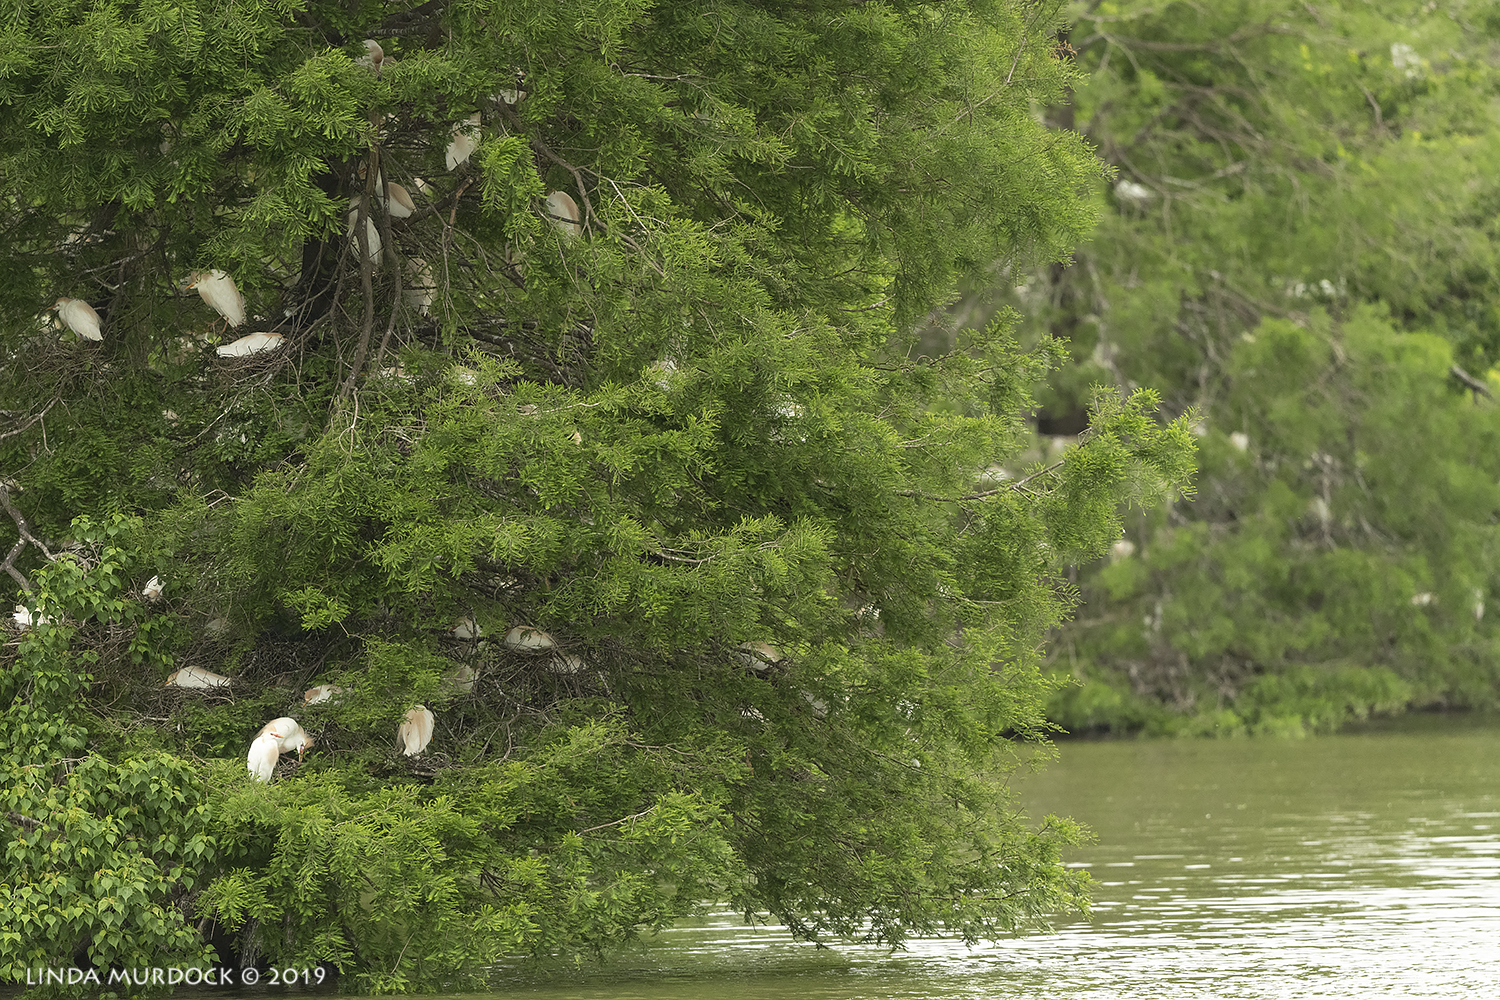 View of the trees on the island with nesting Cattle Egrets Nikon D850 with Nikkor 500 f/5.6 PF VR ~ 1/2000 sec f/5.6 ISO 1600